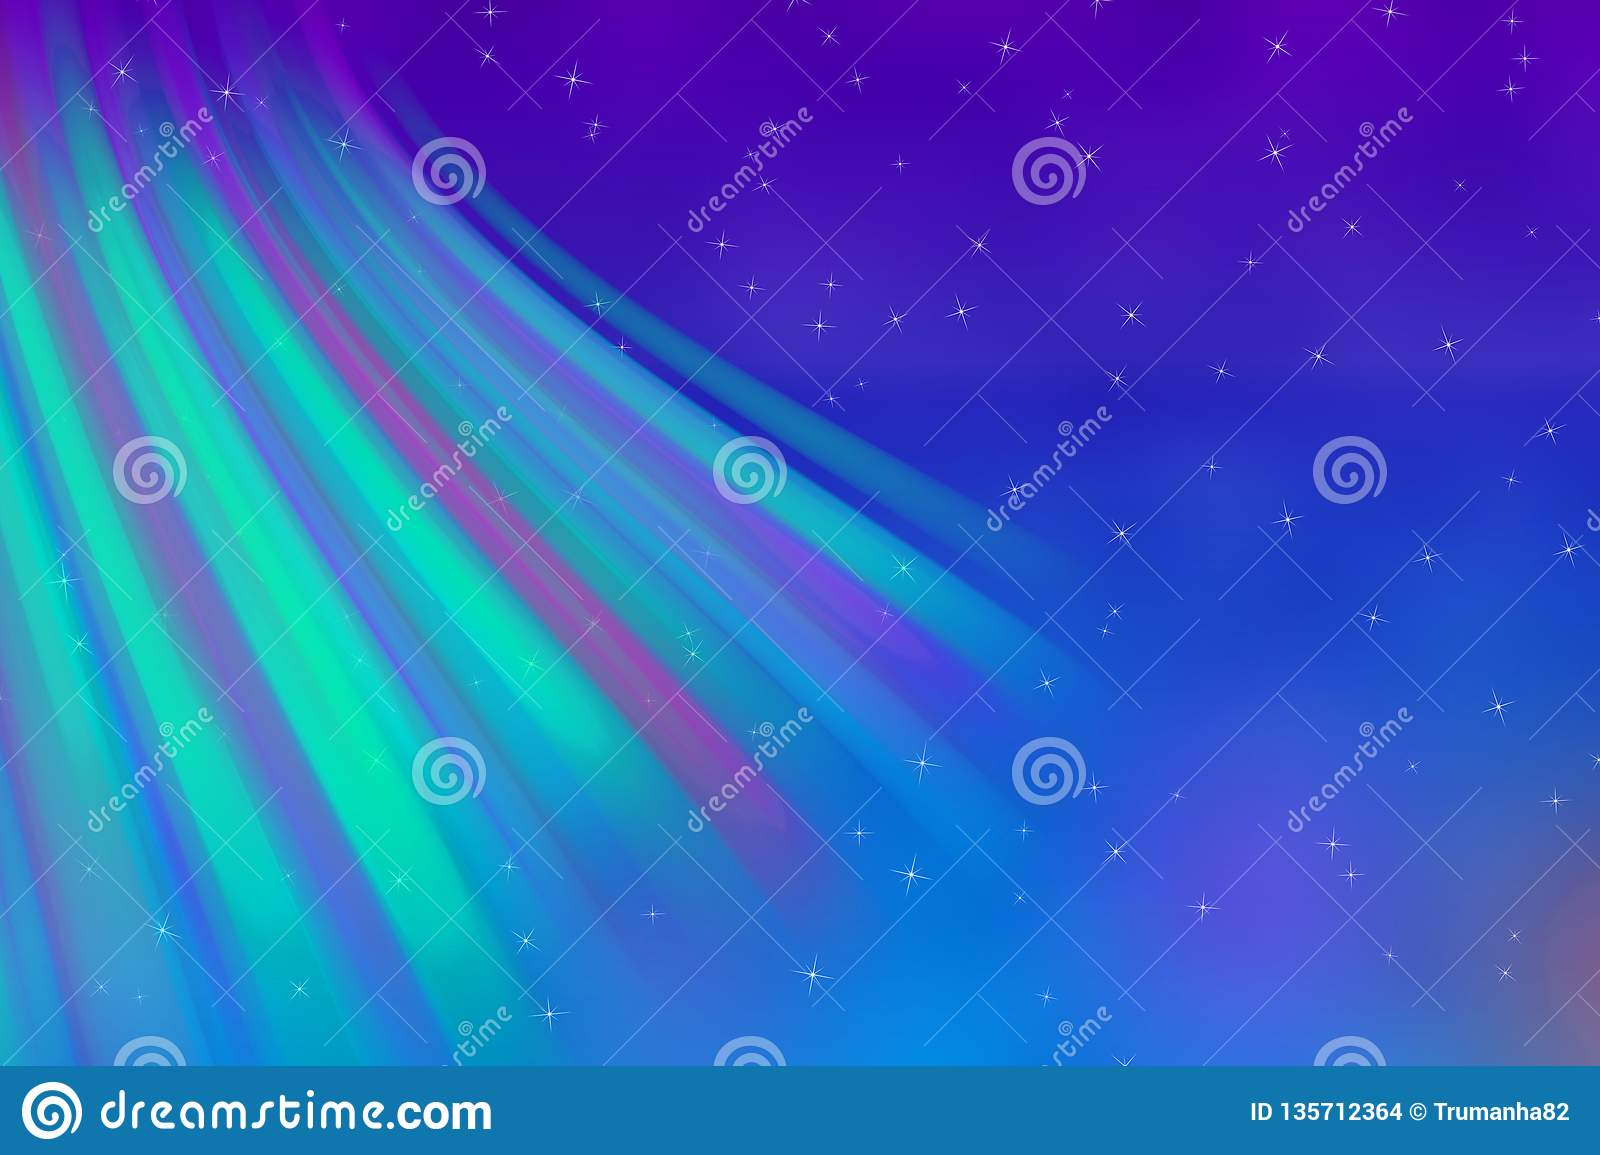 Abstract Colors of Northern Lights